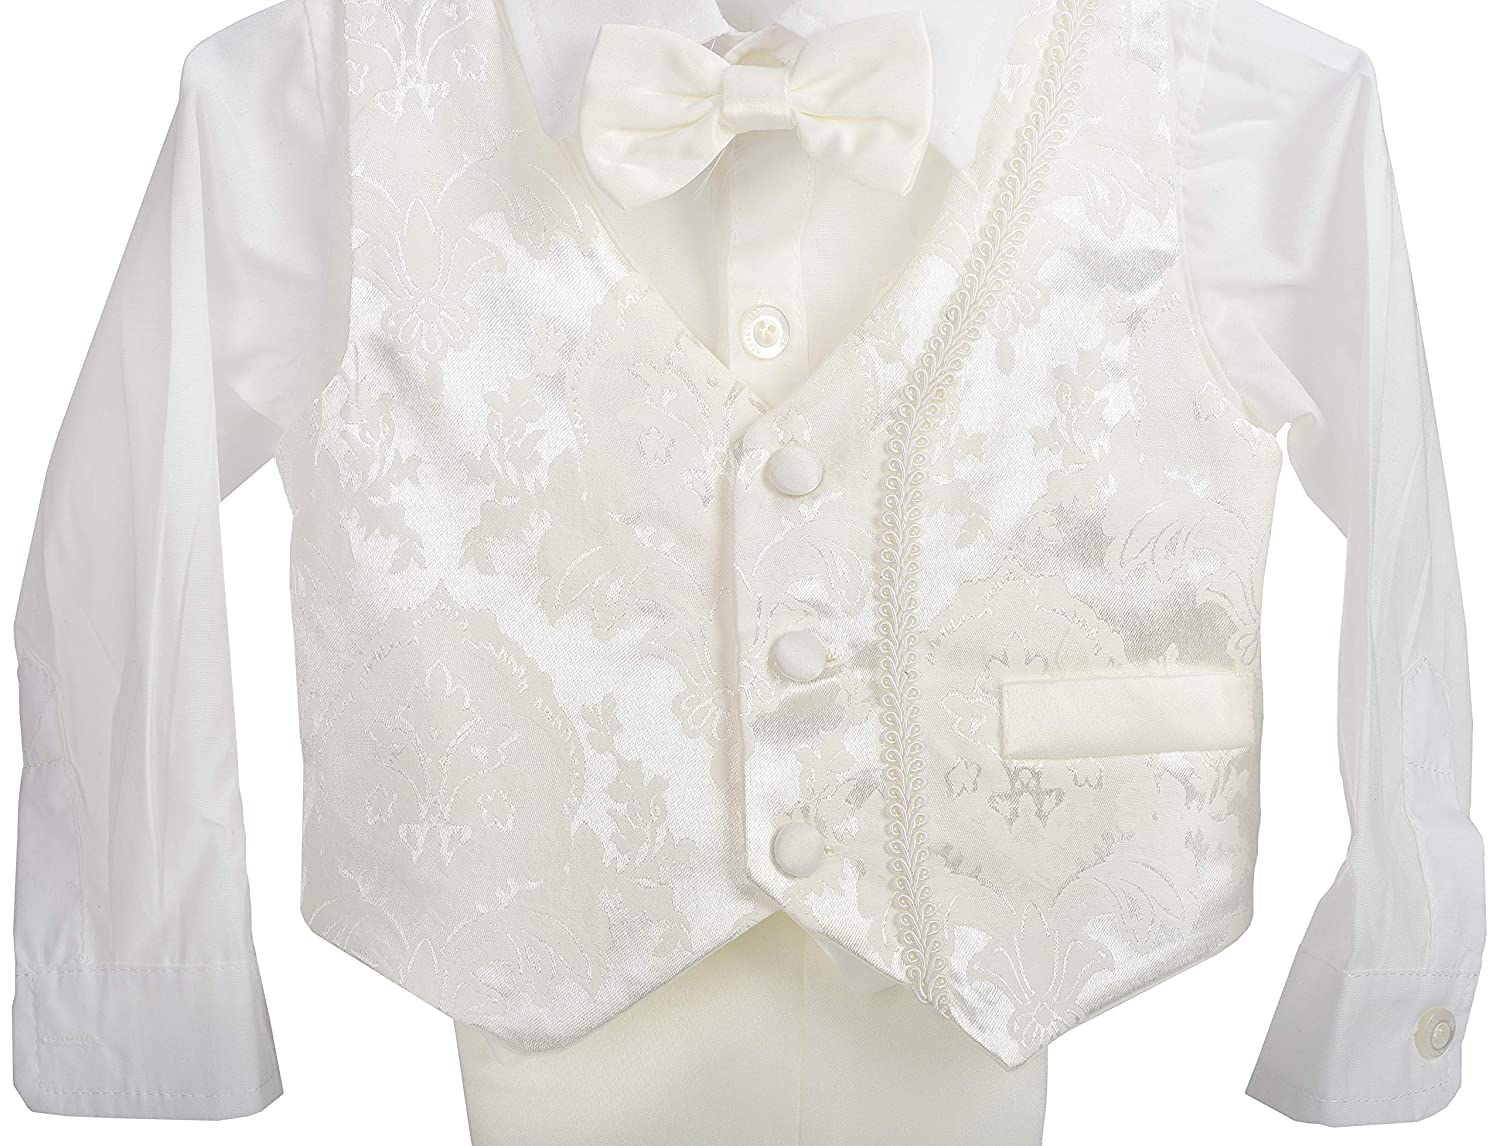 Dressy Daisy Baby Boys 4Pcs Baptism Christening Outfit /& Bonnet Wedding Suit